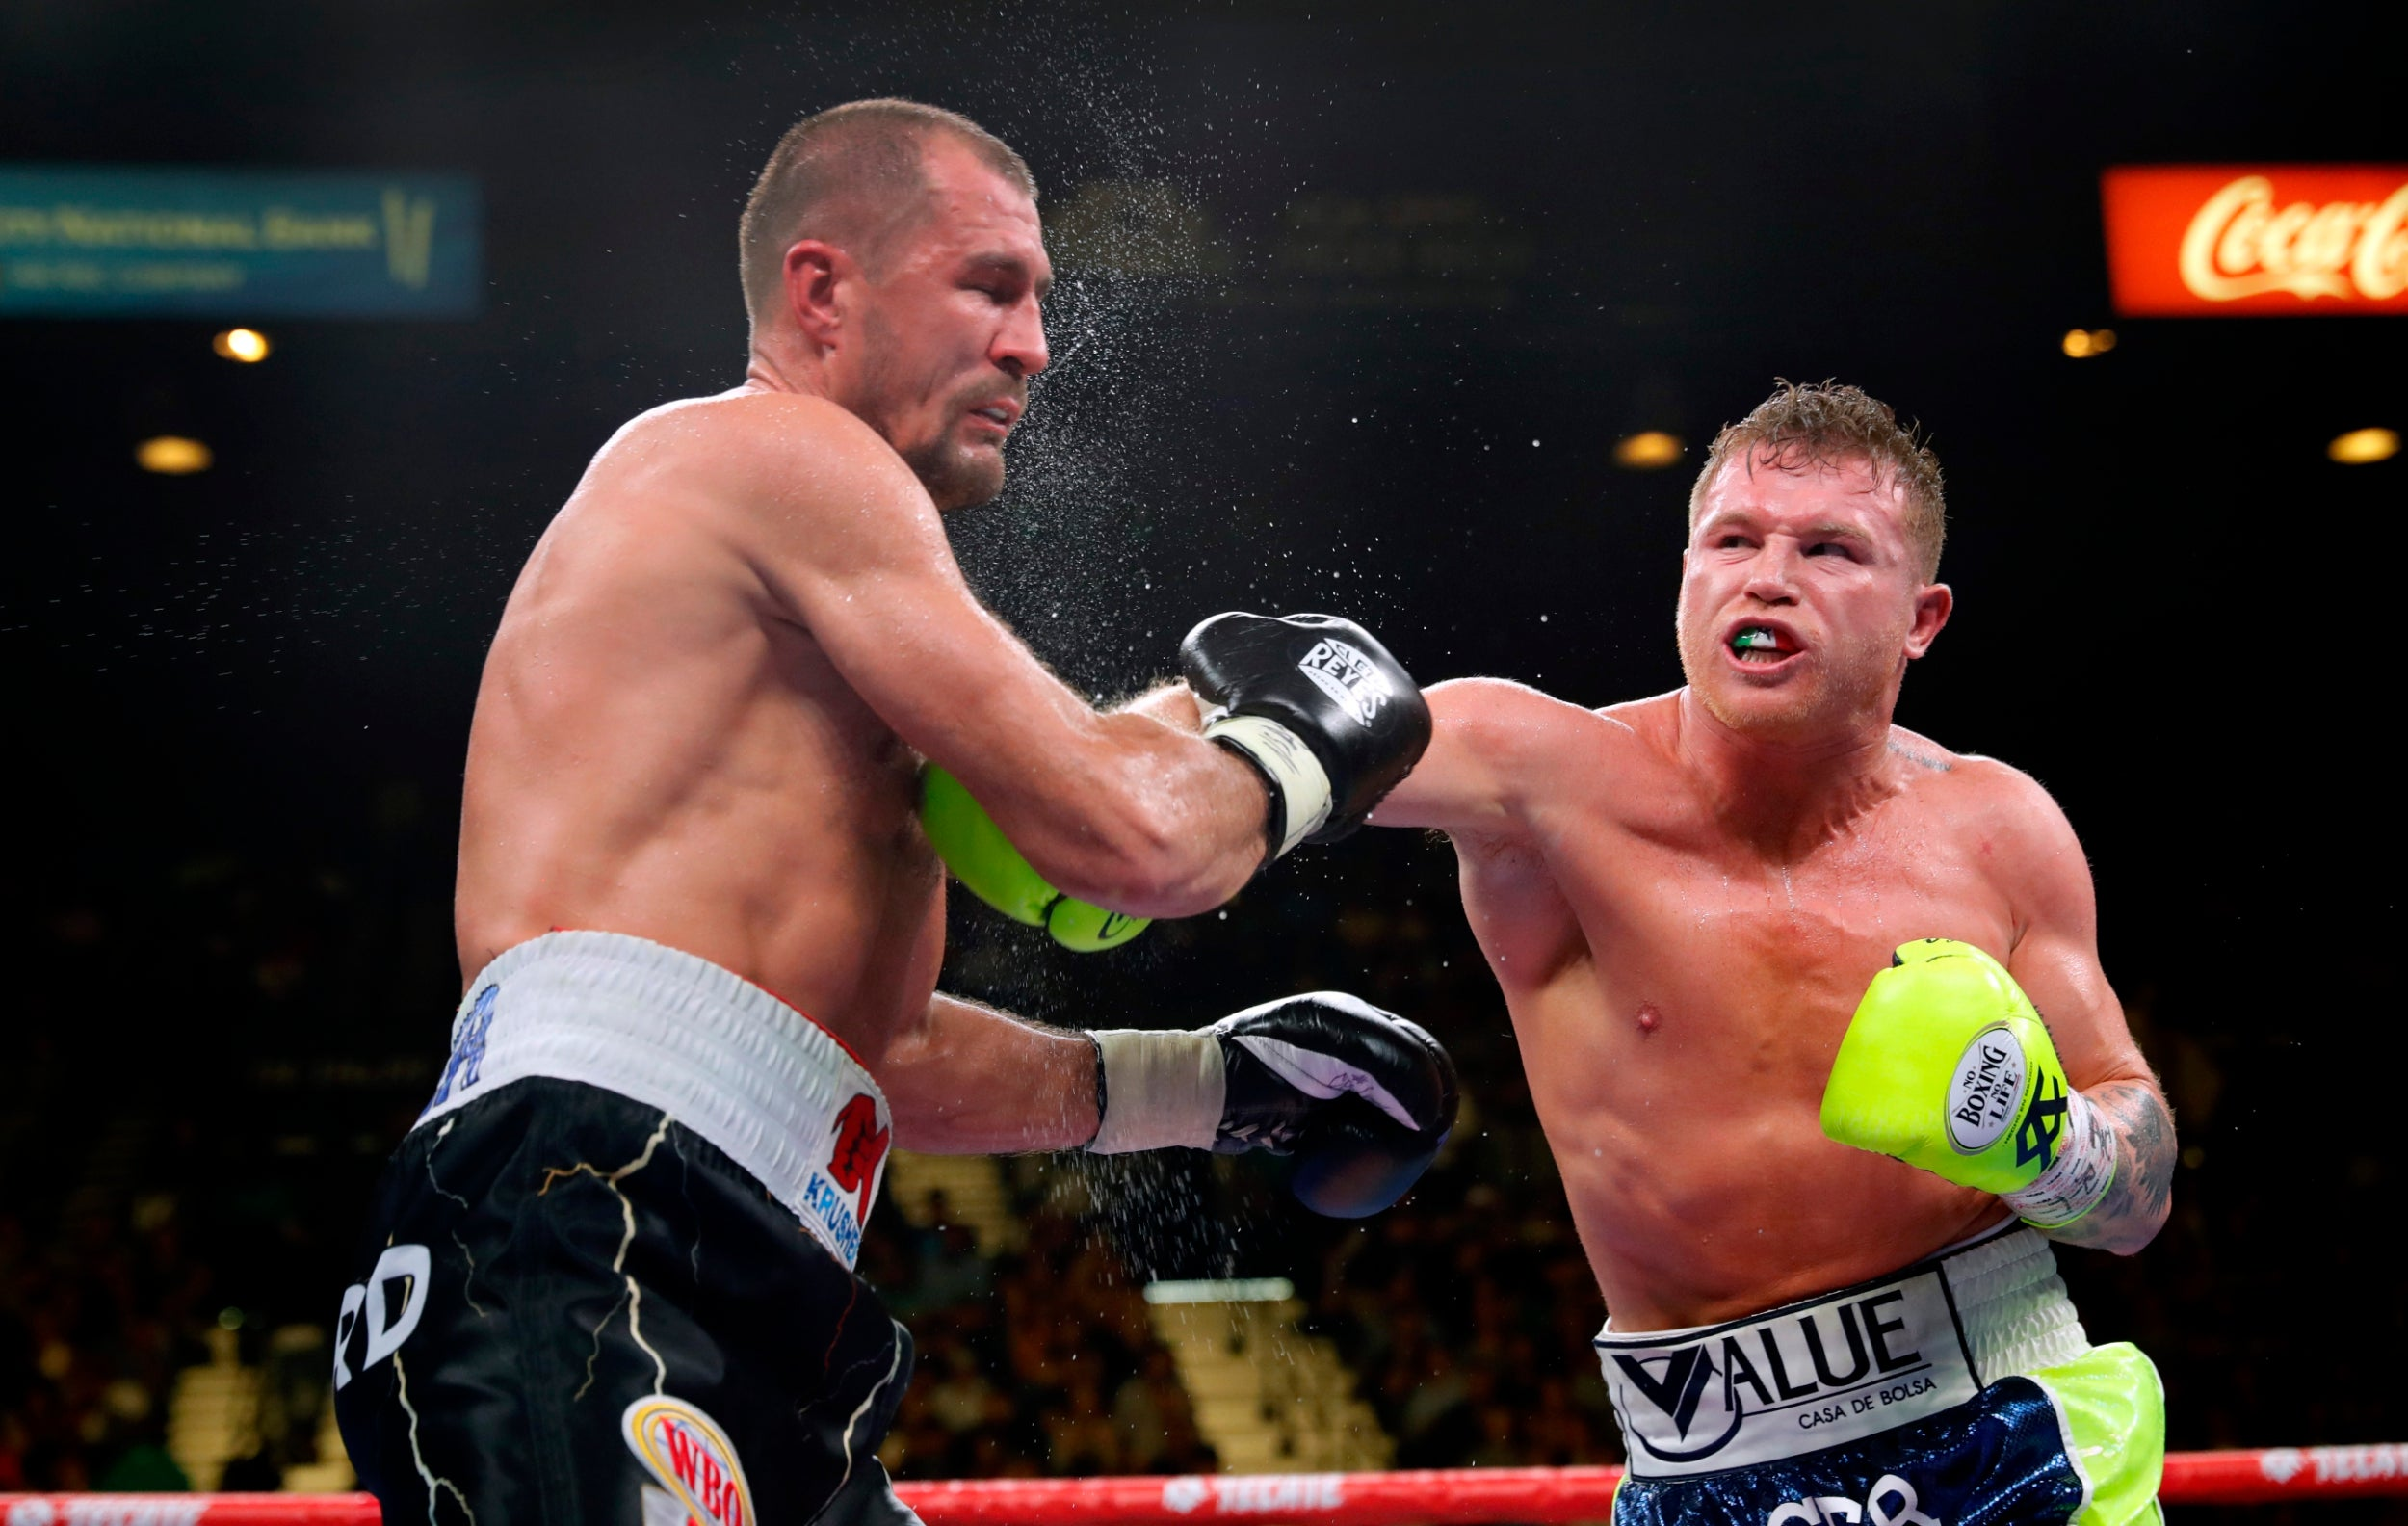 Who is the best pound-for-pound boxer in the world?